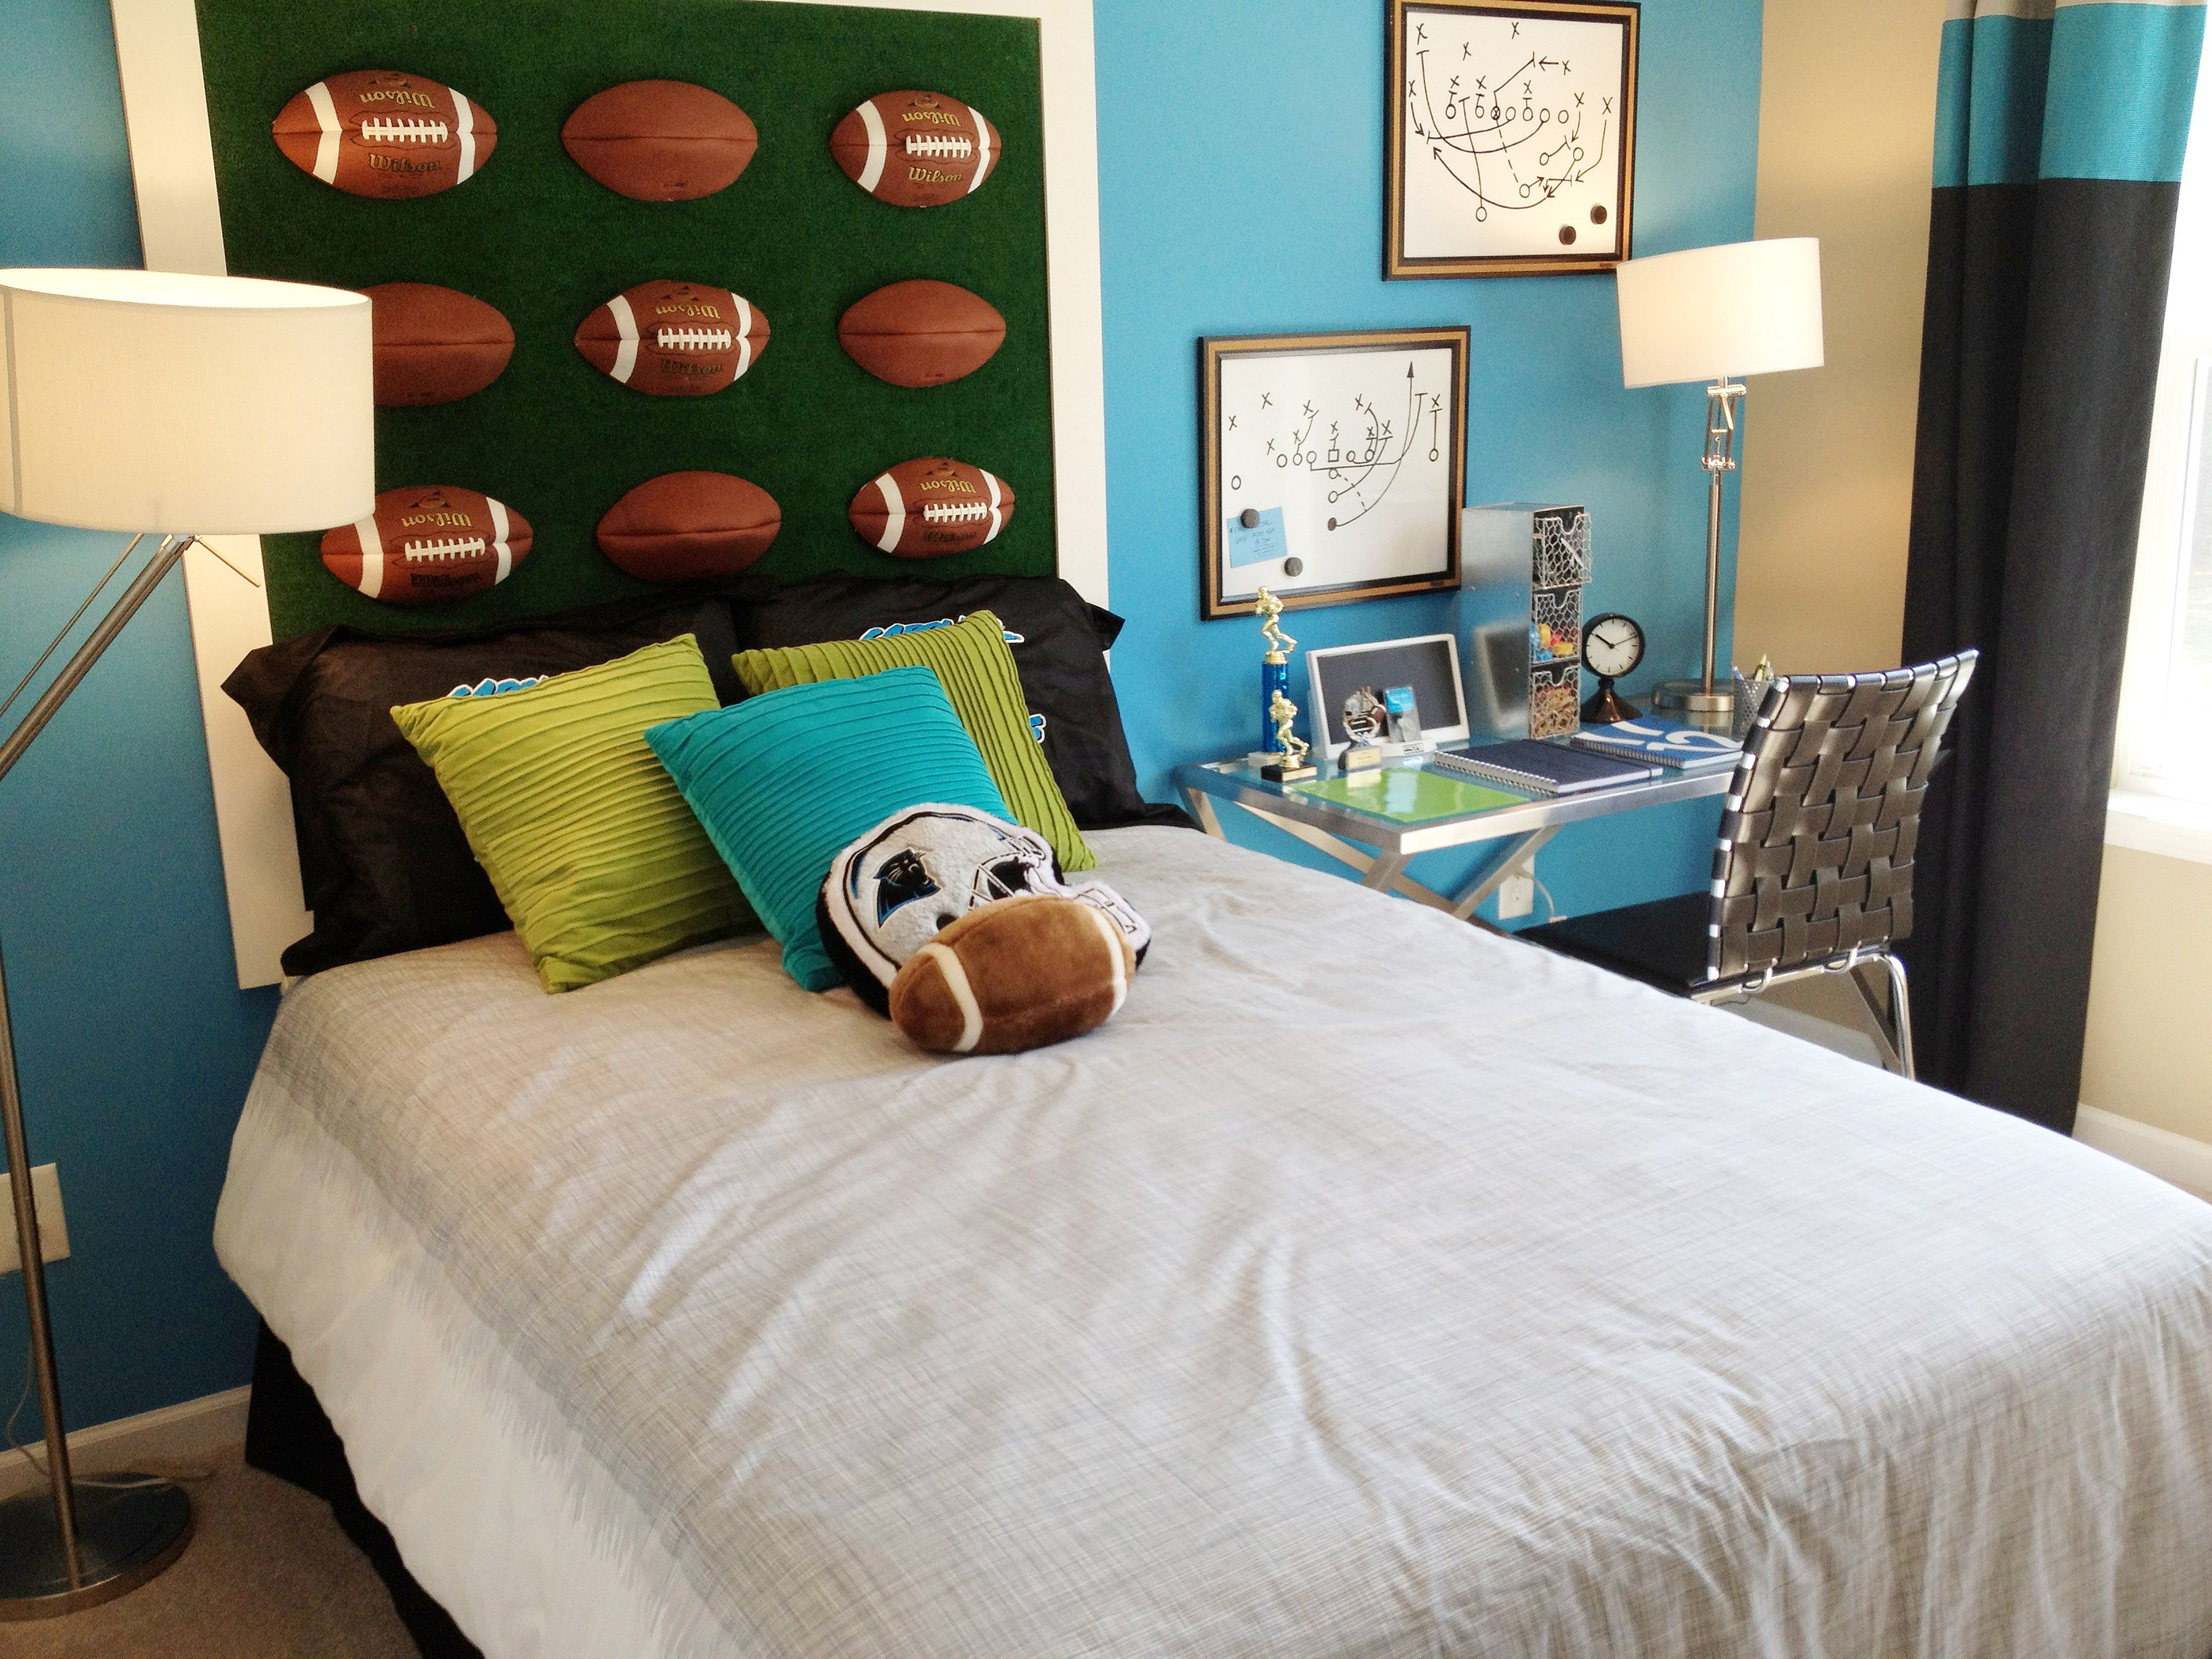 Cut Foot In Half And Place On Artificial Gr To Make This Creative Headboard For Your Football Fan S Bedroom Could Also Use Base